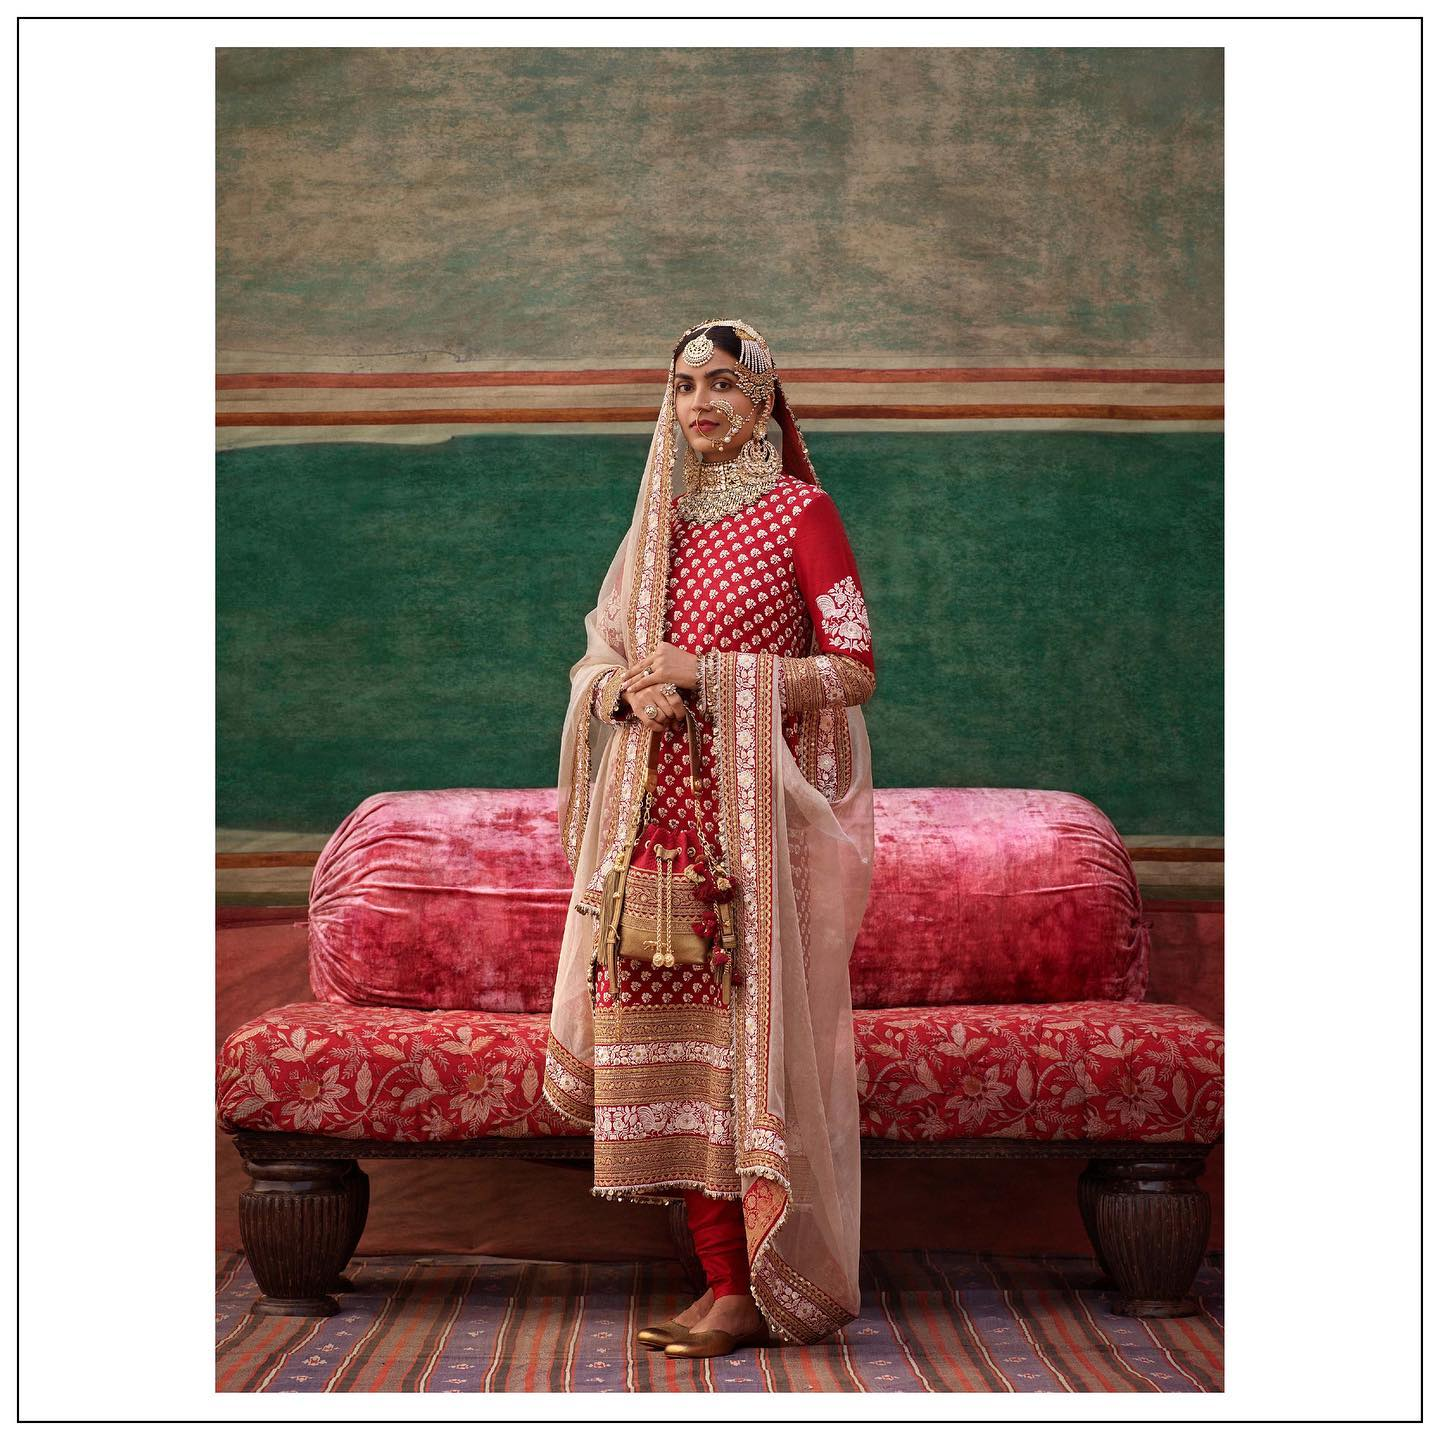 Stunning Red color floor length bridal kurti dress. The New Collection.  Womenswear and jewellery Sabyasachi jewelry.  For all product related queries please email  at customerservice@sabyasachi.com or contact retail stores directly. 2021-09-06